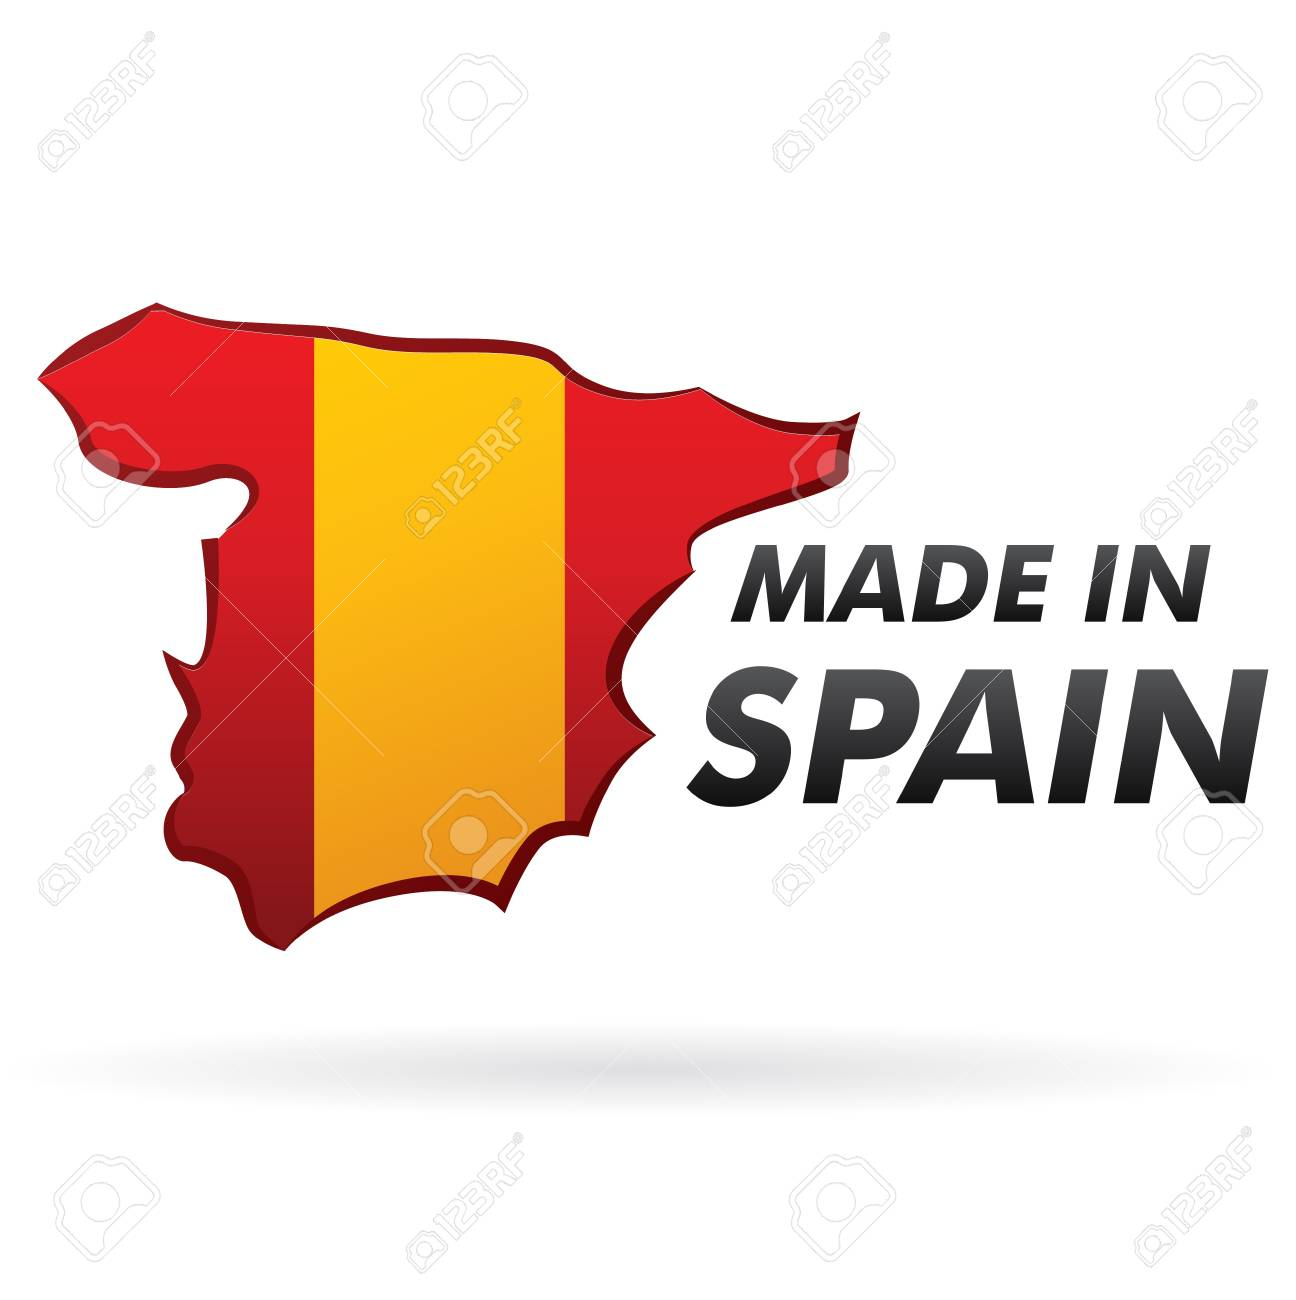 sale retail Made in spain Stock Vector - 17773428